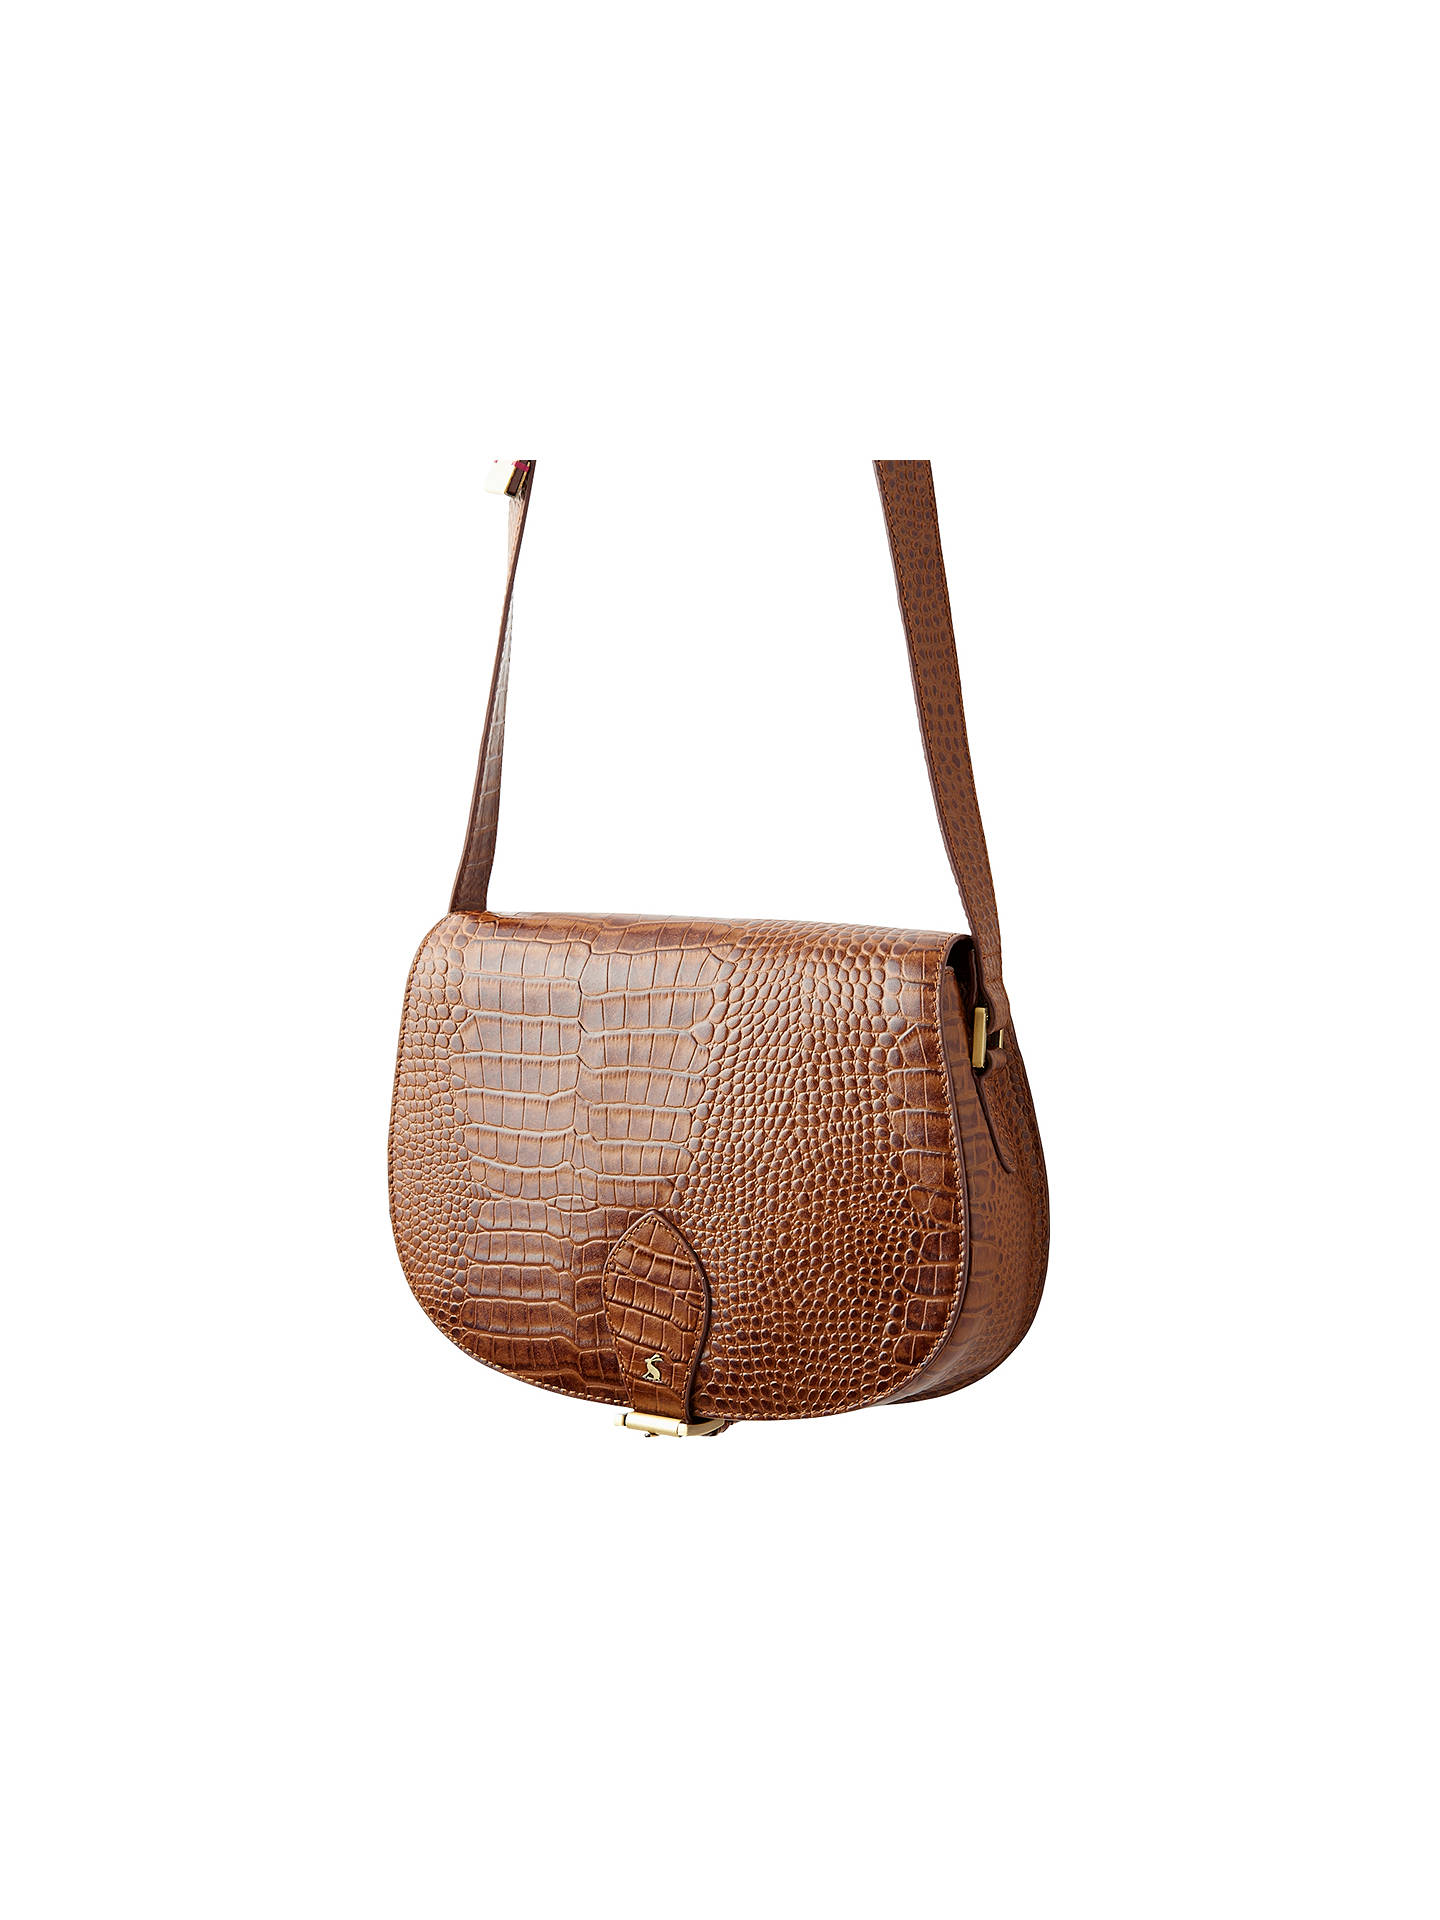 80c450a5 Joules Shoreditch Across Body Leather Croc Saddle Bag, Brown at John ...